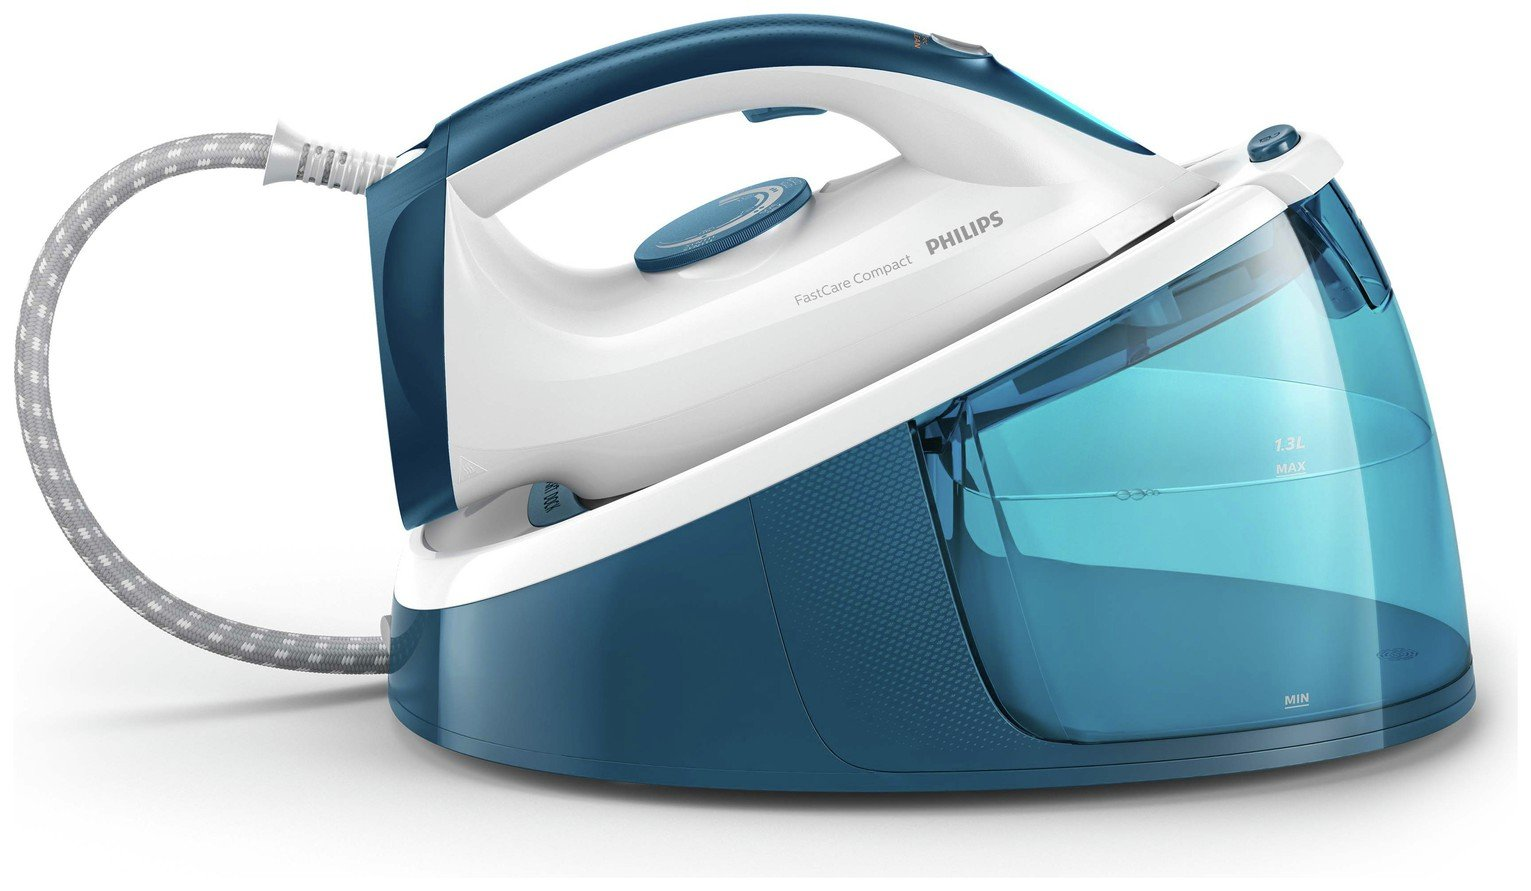 Philips GC6733/26 Fastcare Compact Steam Generator Iron from Philips